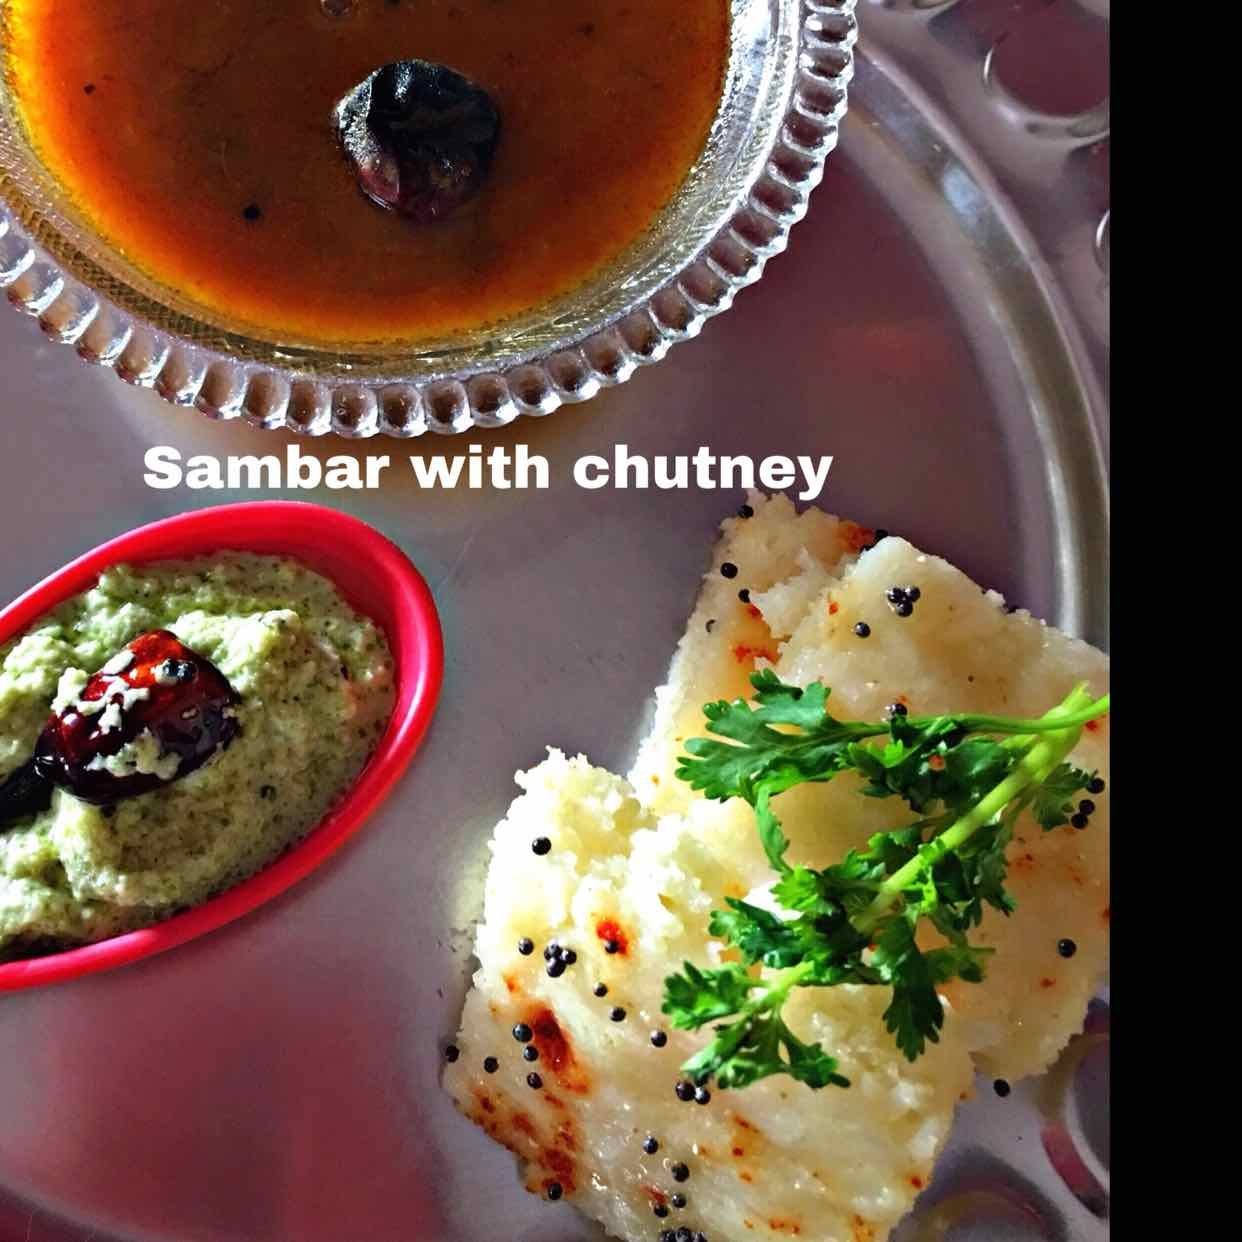 How to make Sambar with chutney and Dhokla